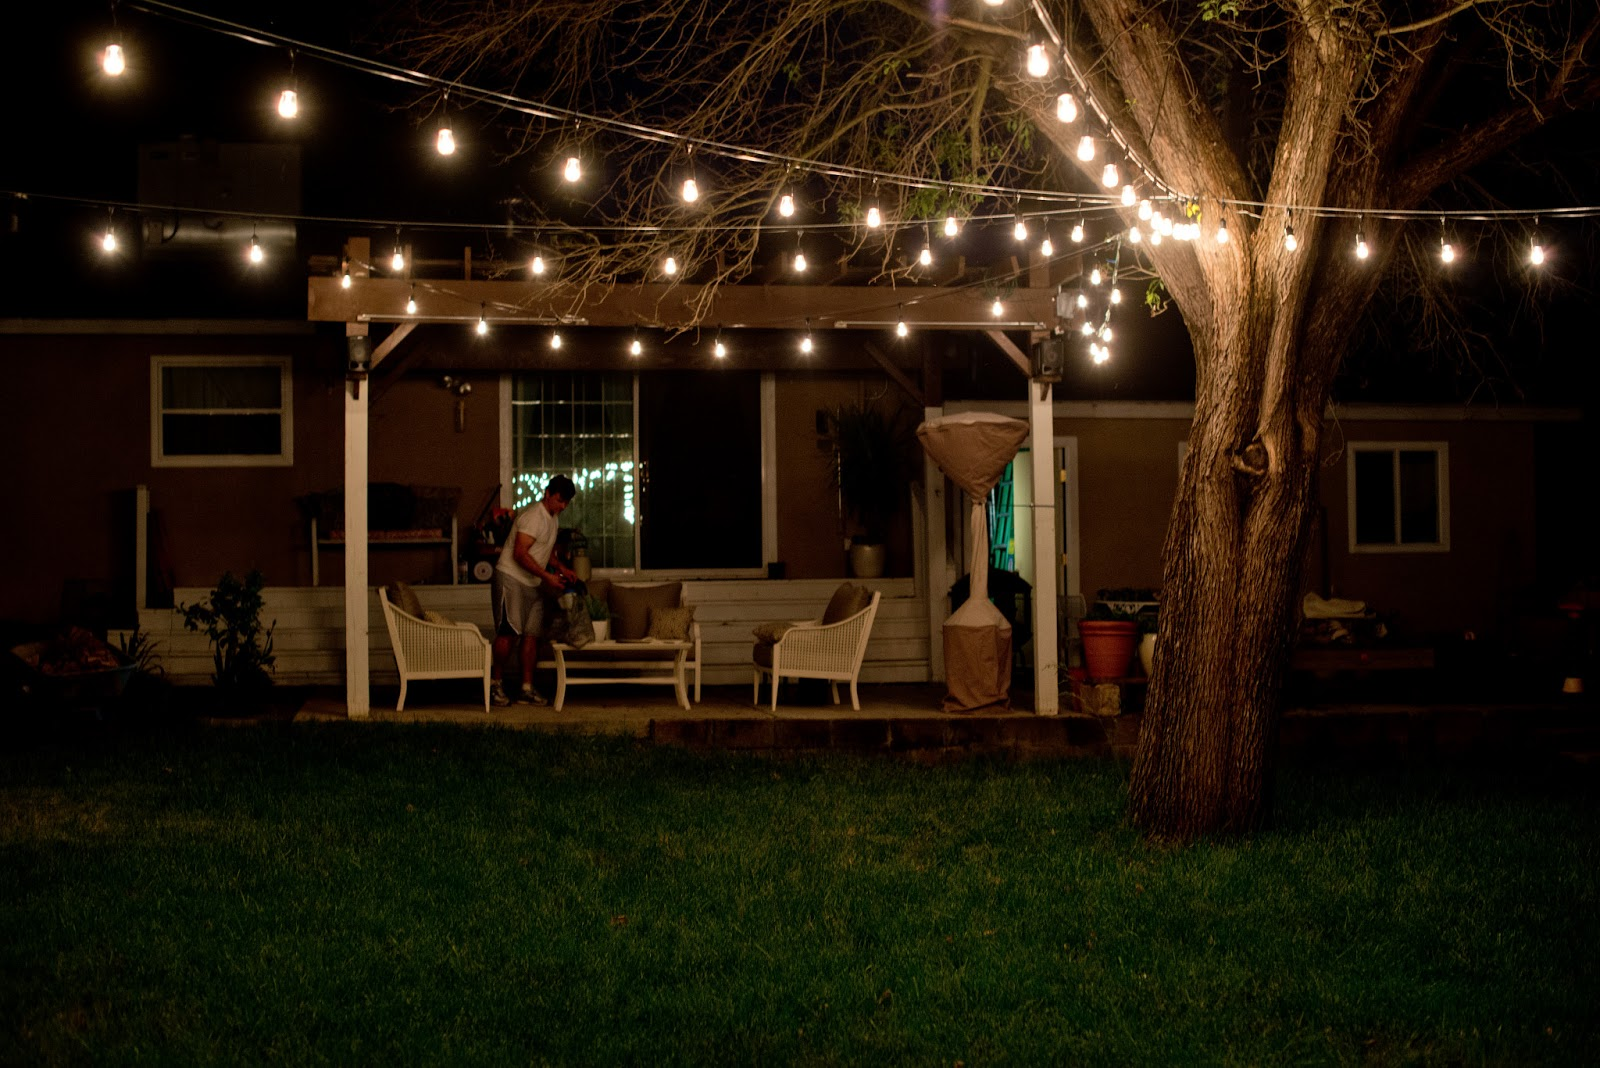 Domestic Fashionista : Industrial Vintage Backyard Lighting